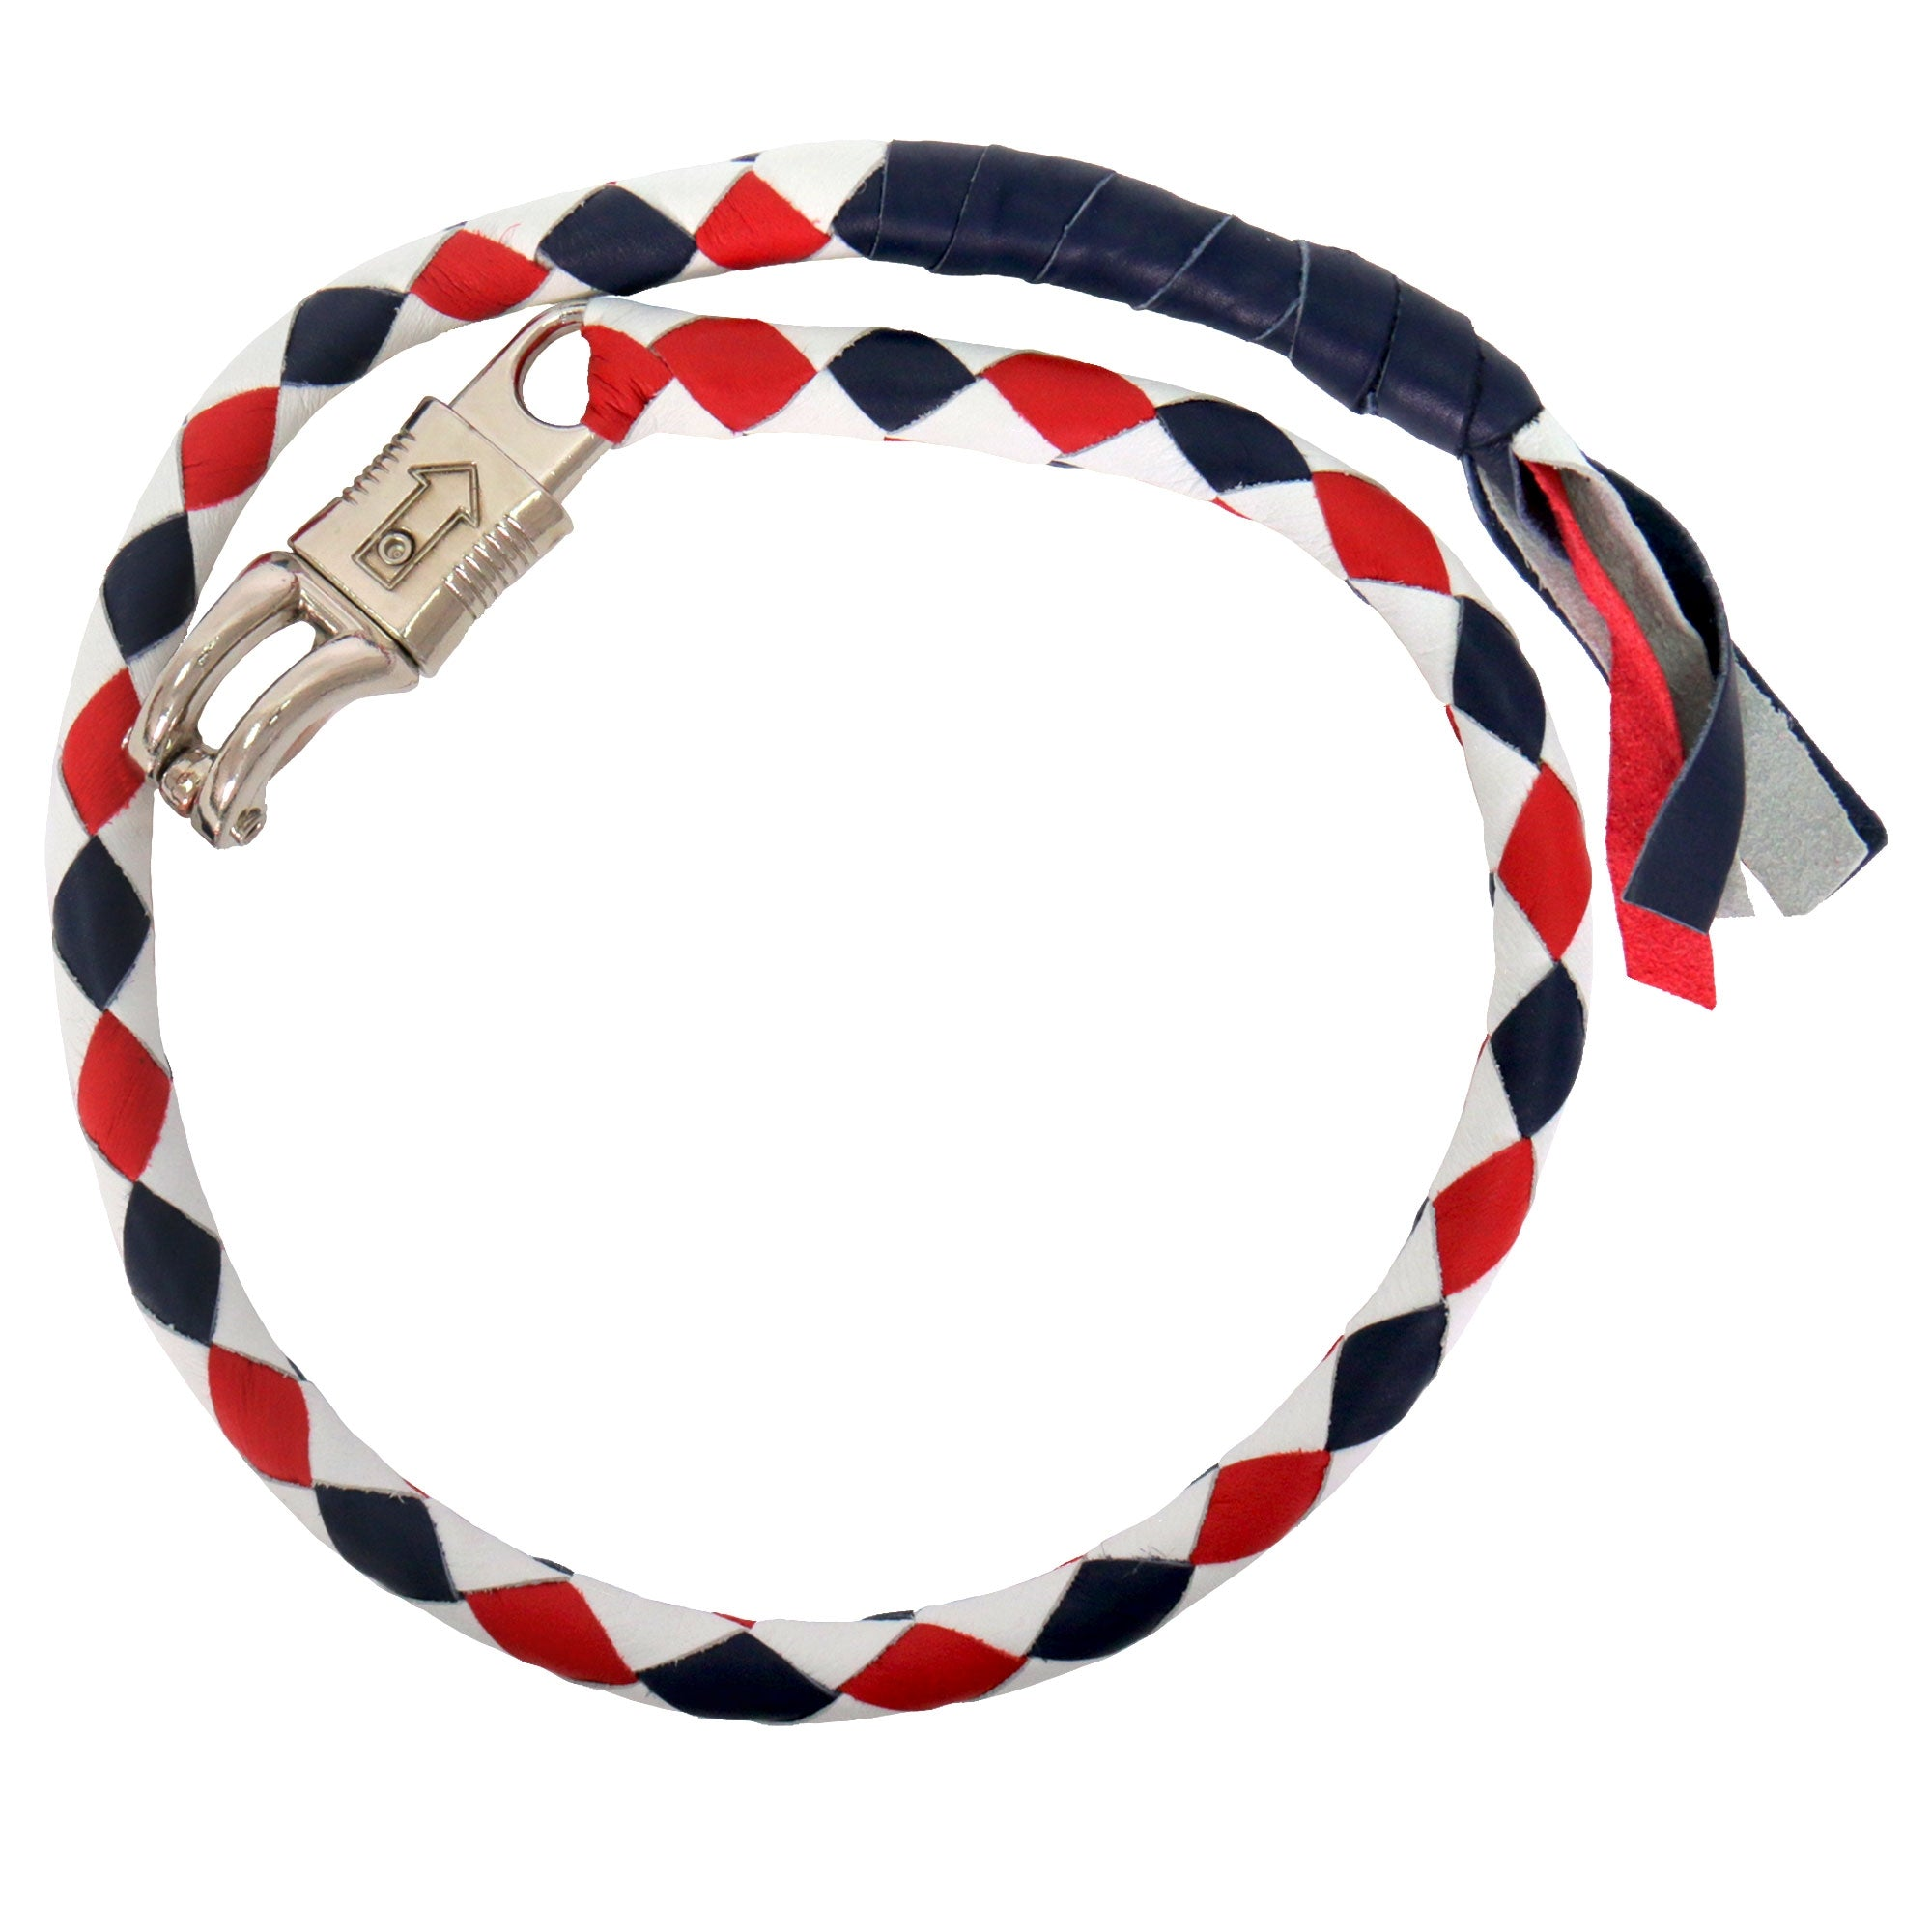 "Hot Leathers ""Get Back"" Red, White, and Blue Genuine Leather Whip"